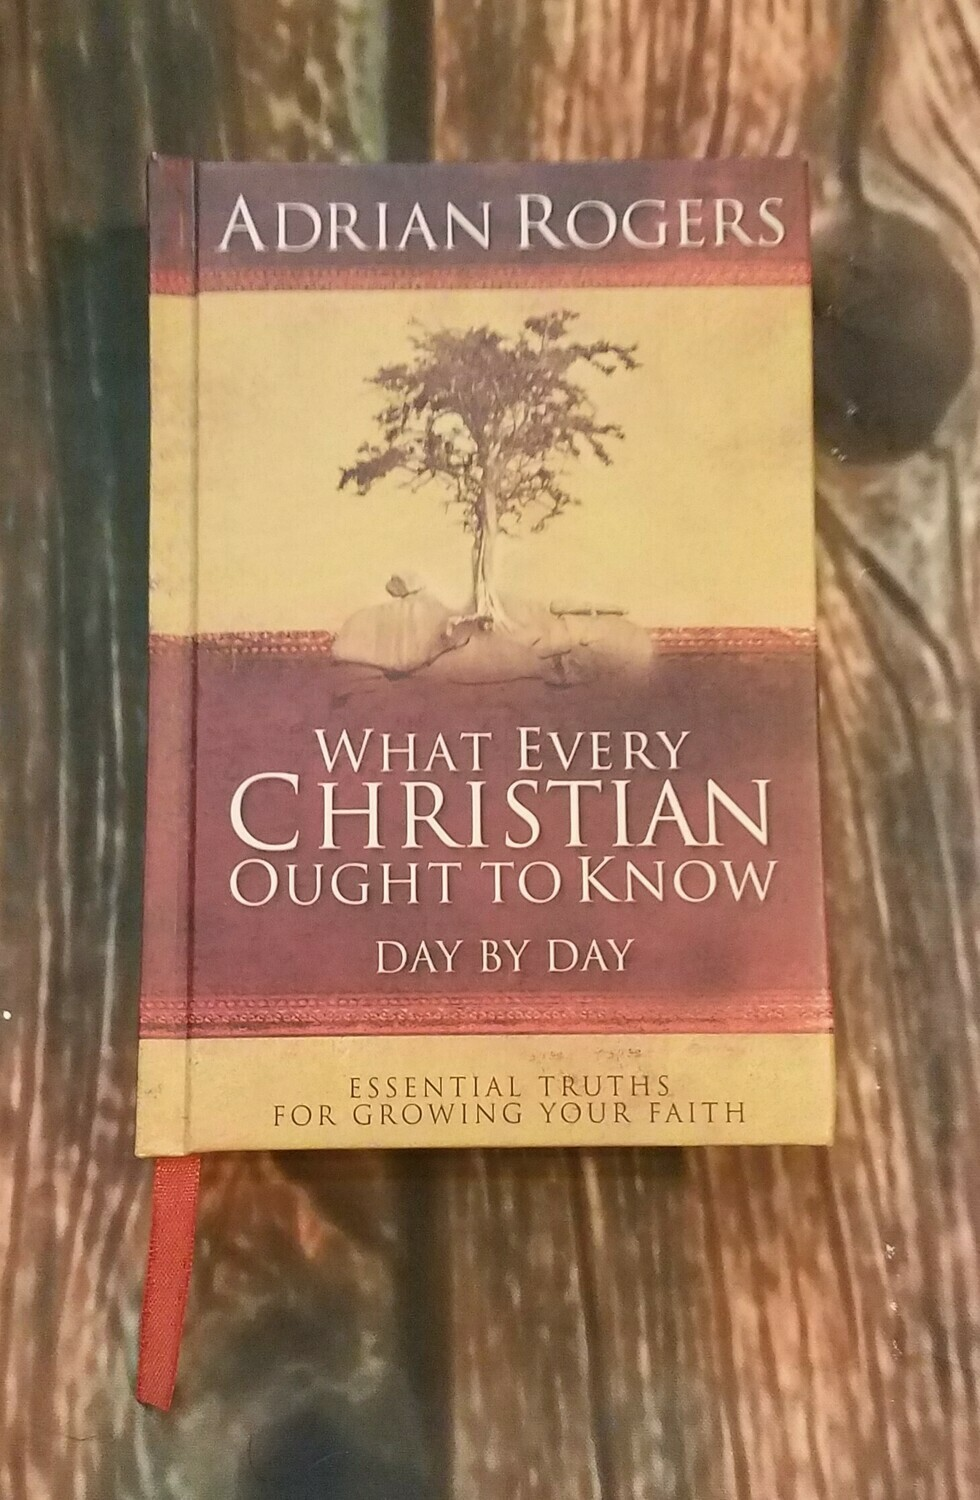 What Every Christian Ought to Know Day by Day by Adrian Rogers